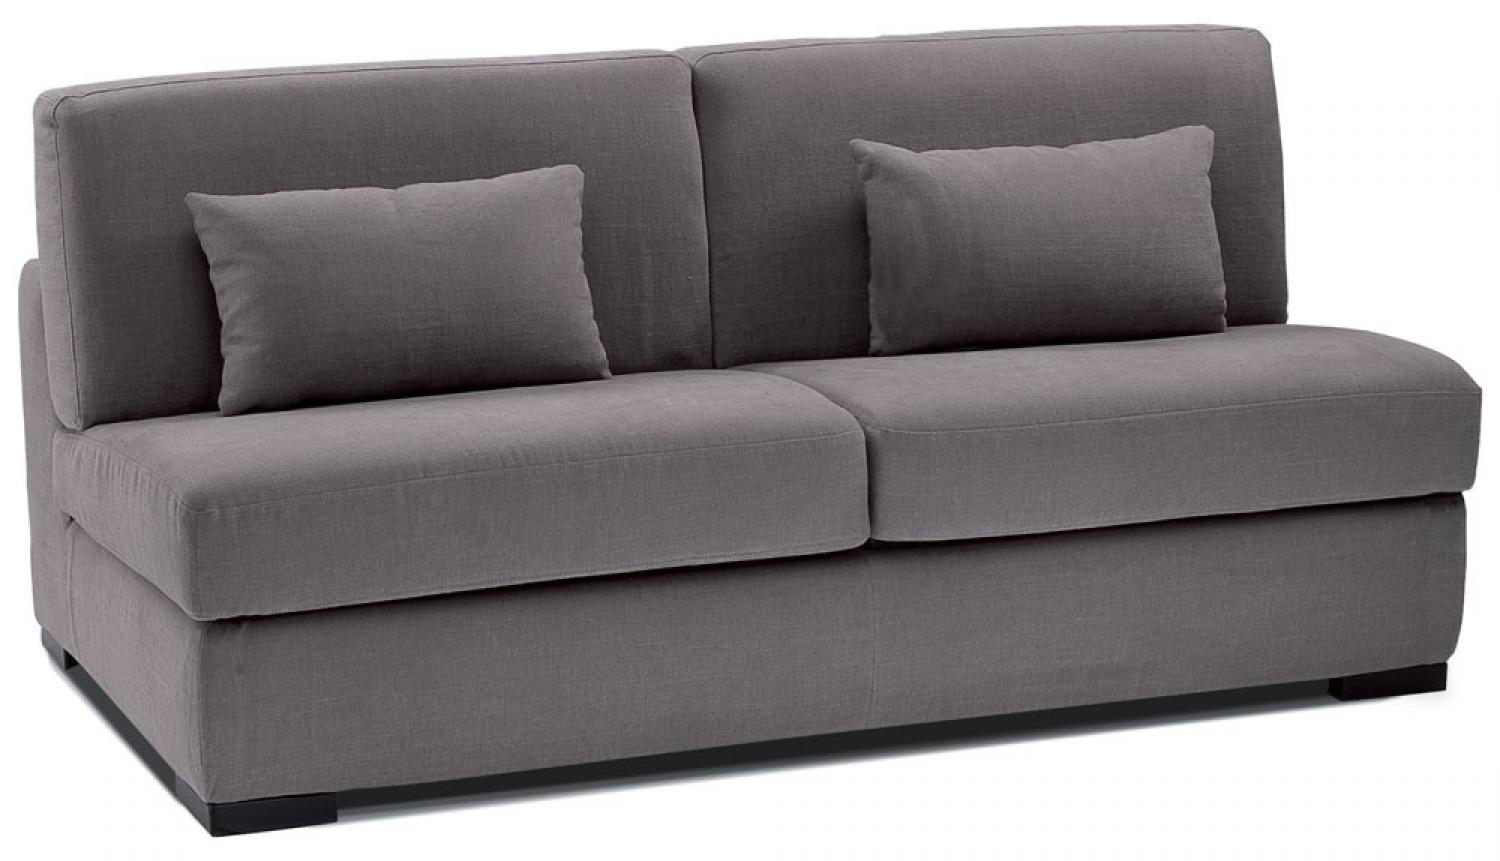 Photos canap convertible pas cher but for Canape futon pas cher